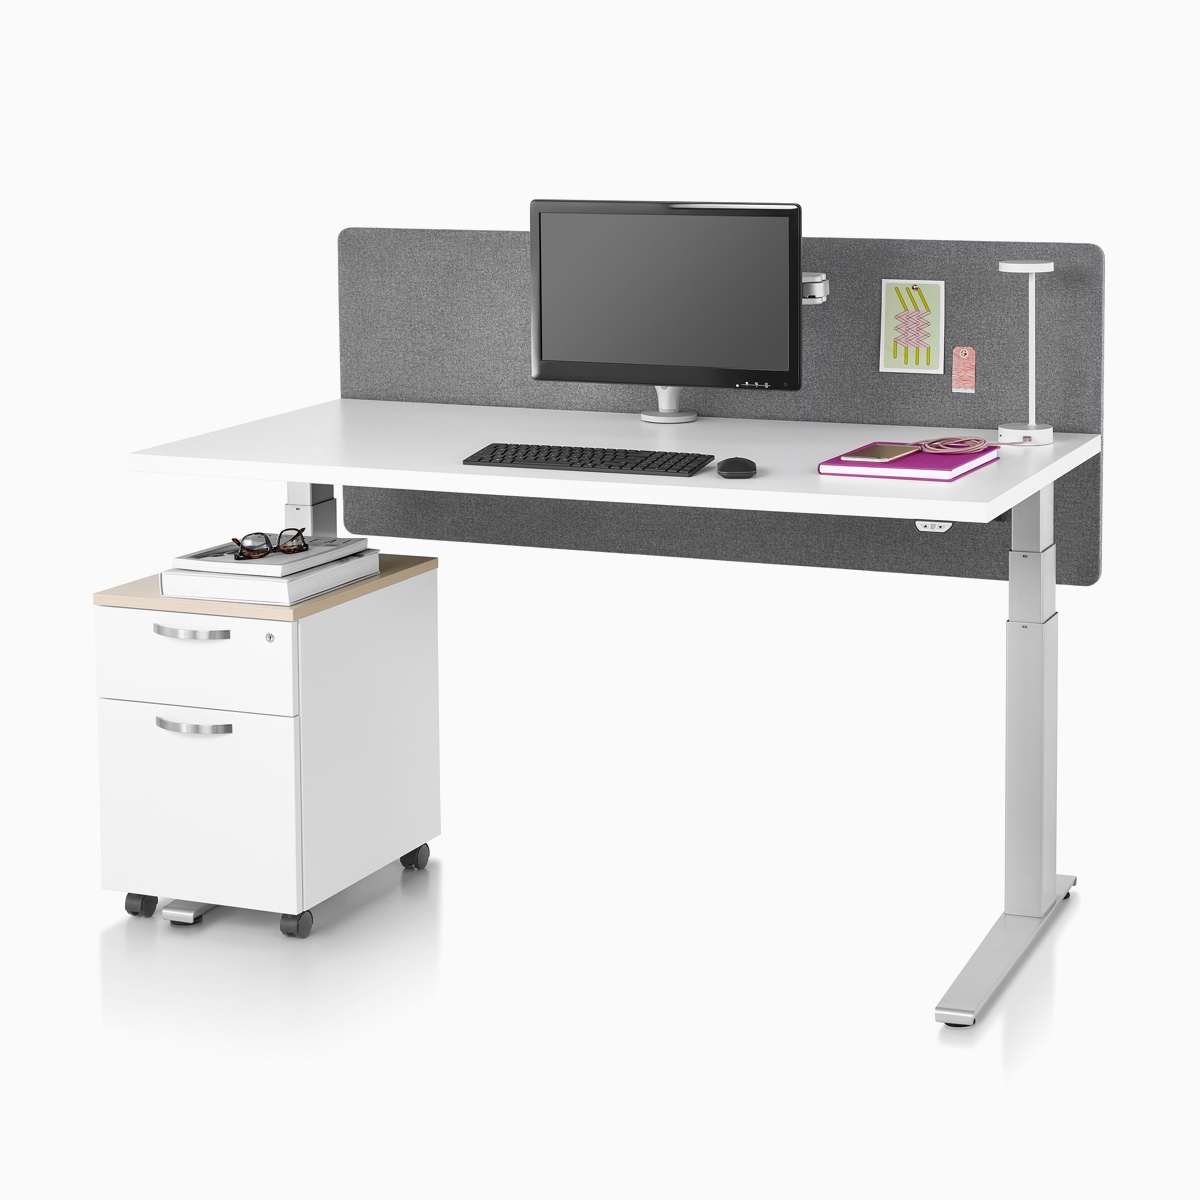 A Motia standing desk with a white top, metallic silver base, surface-attached privacy screen, desk lamp, and a Tu Wood pedestal.